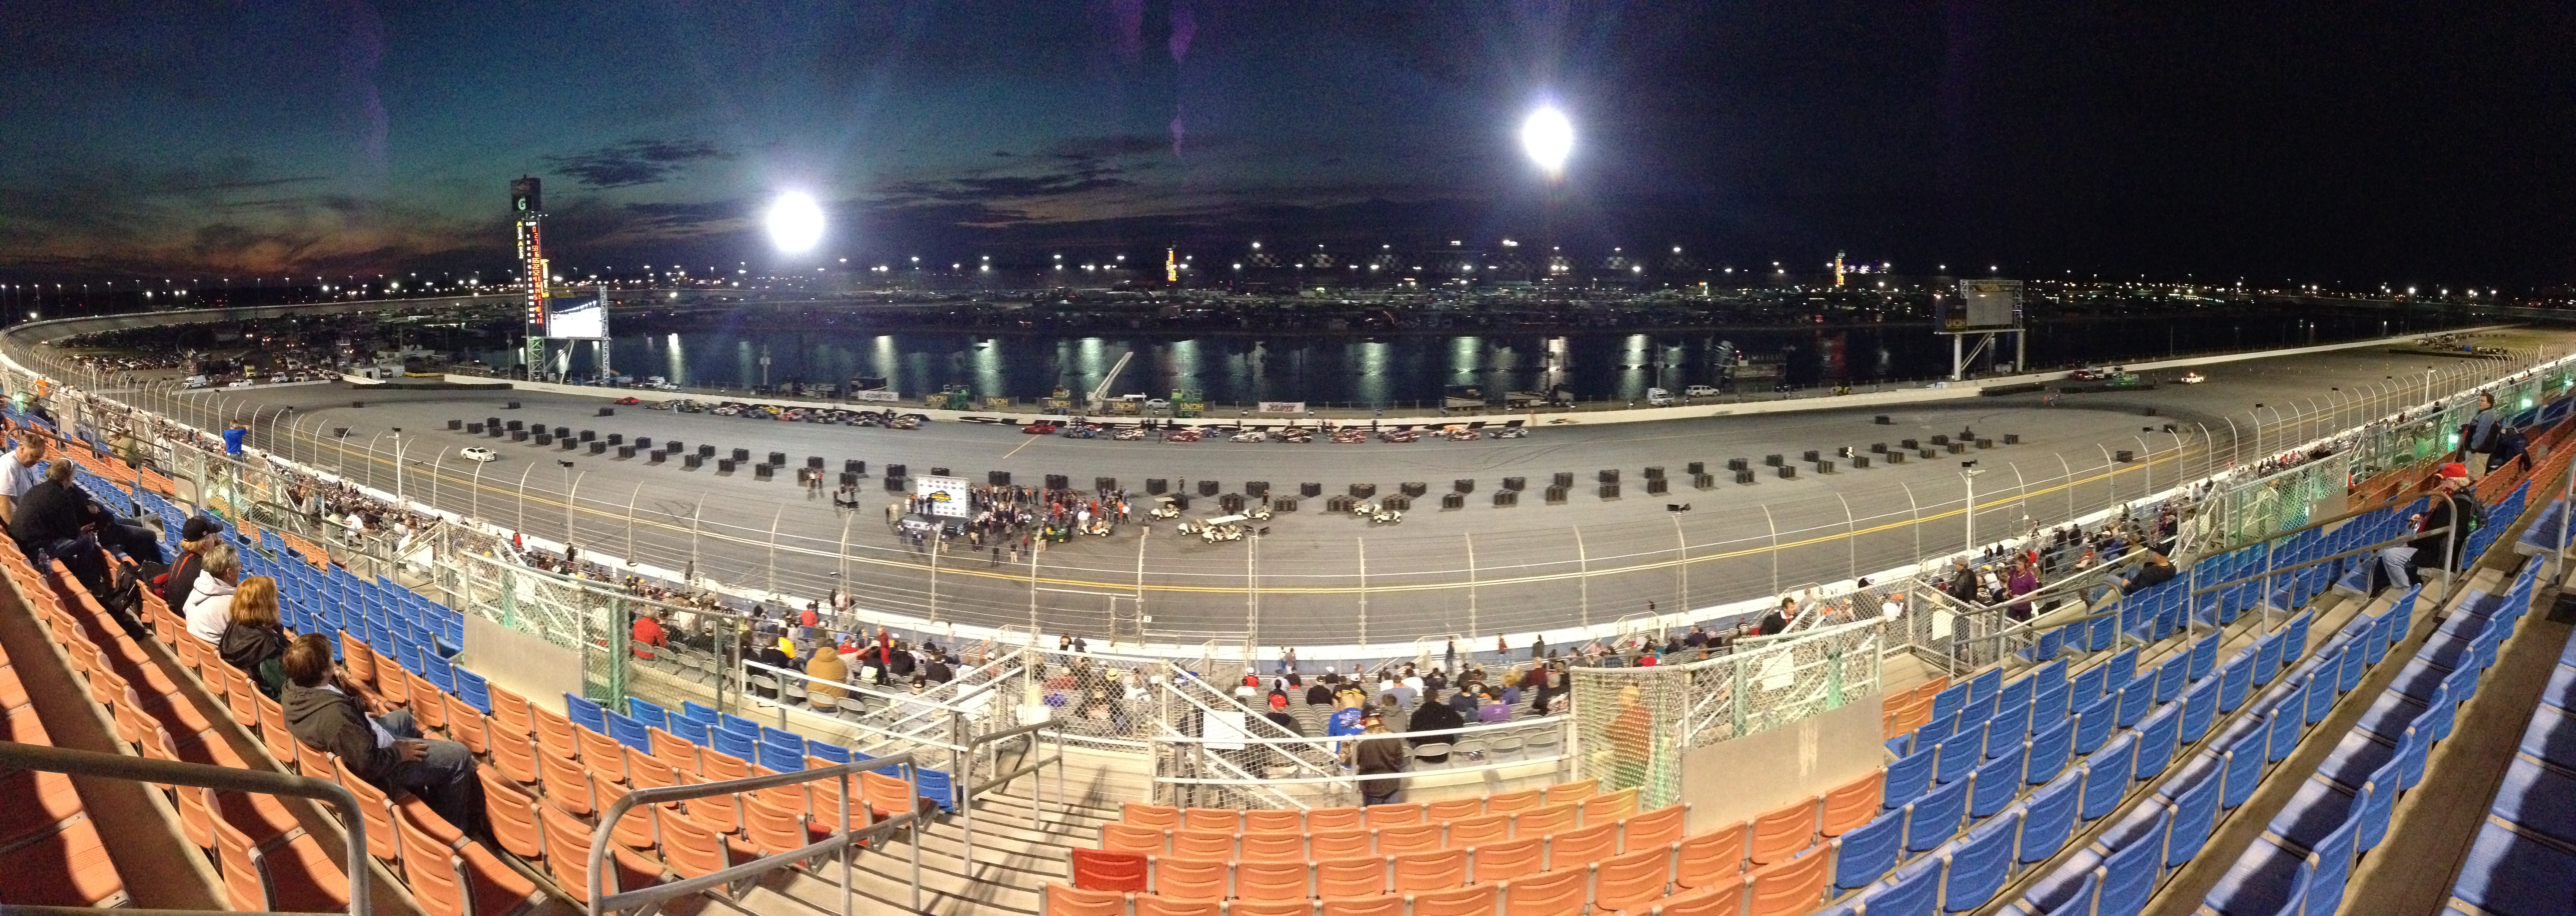 "The panoramic view of the Daytona ""backstretch"" oval."